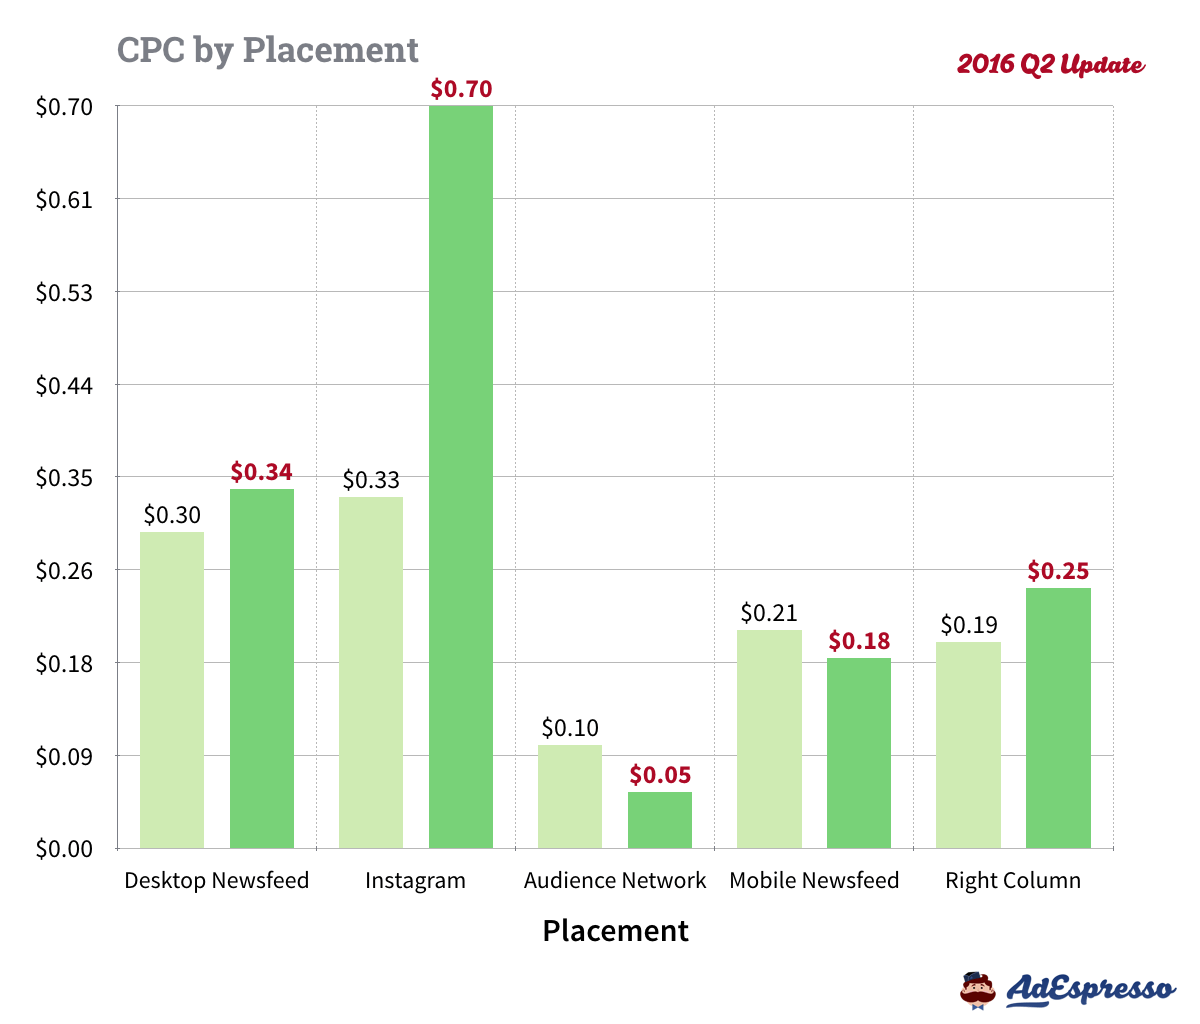 facebook ads cost cpc placement 2016 Q2.004